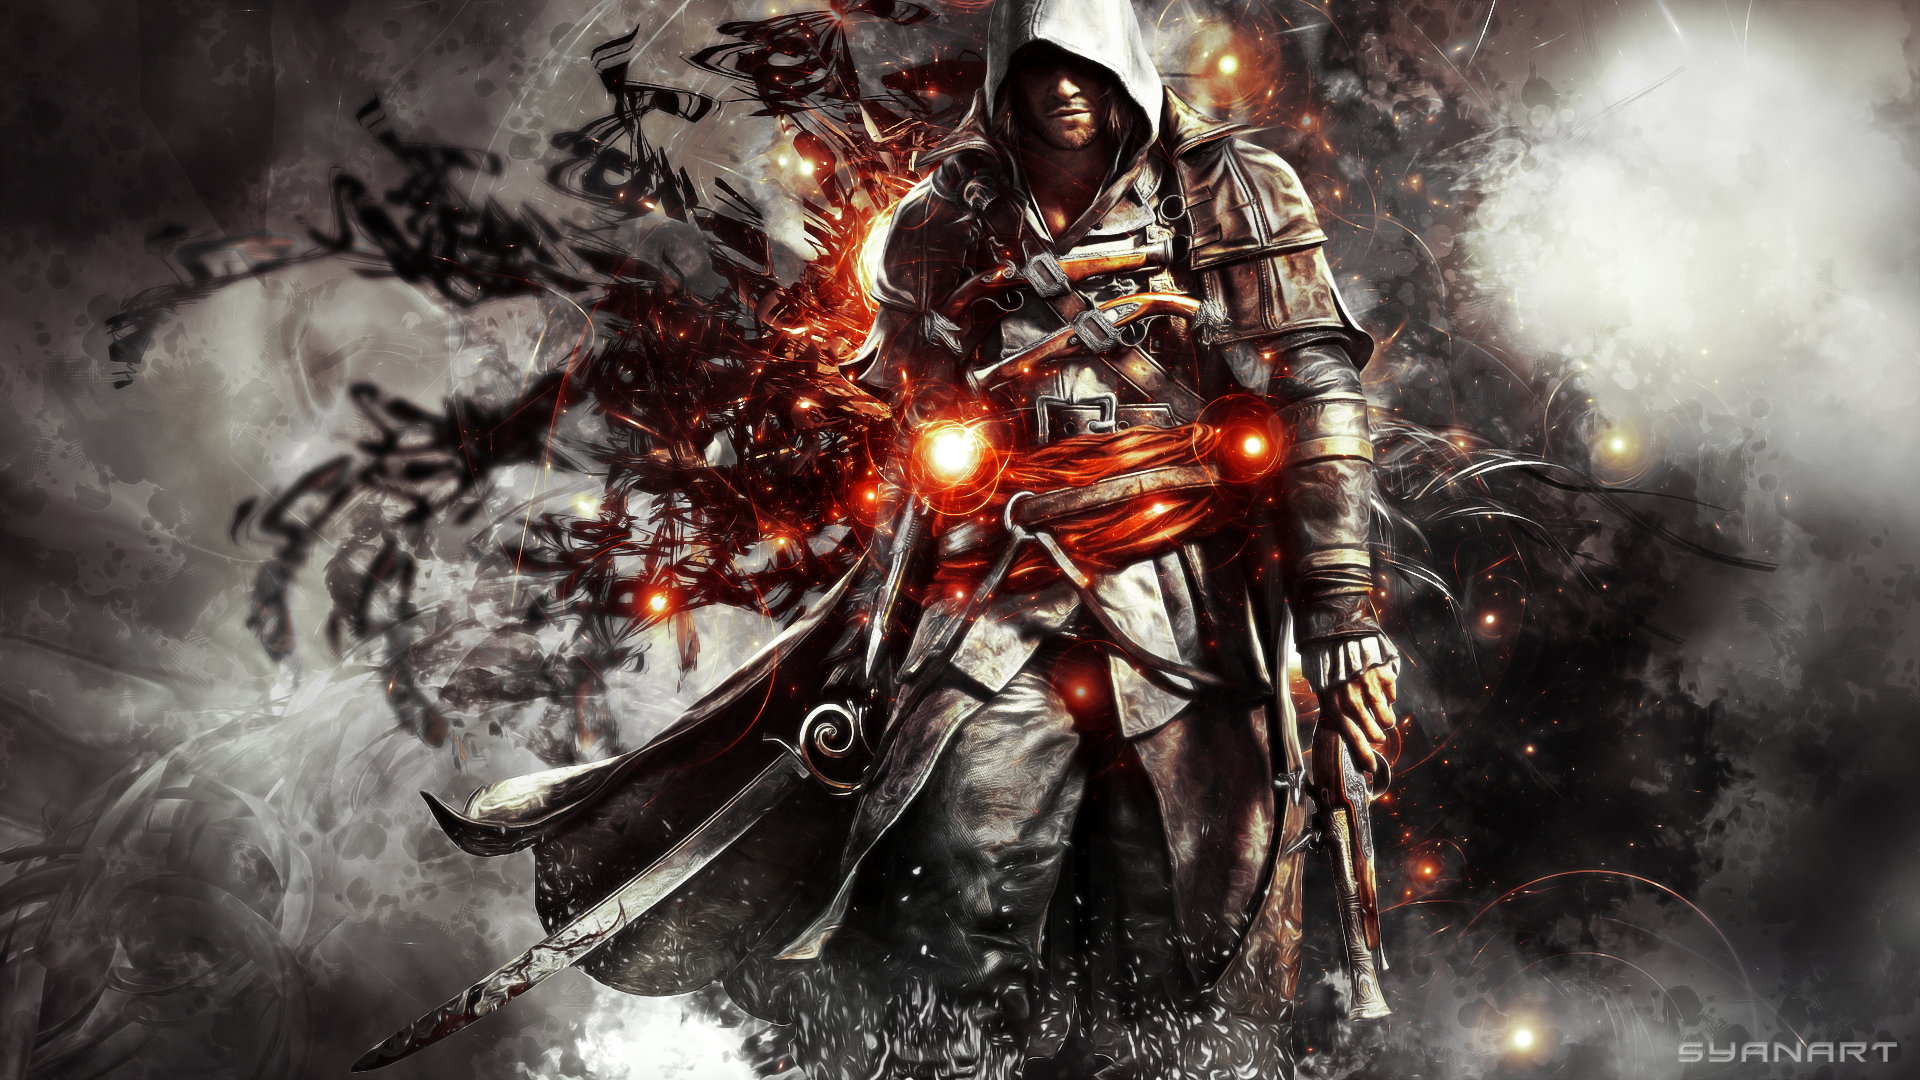 Assassins Creed 4 Black Flag Wallpaper Syanart Station